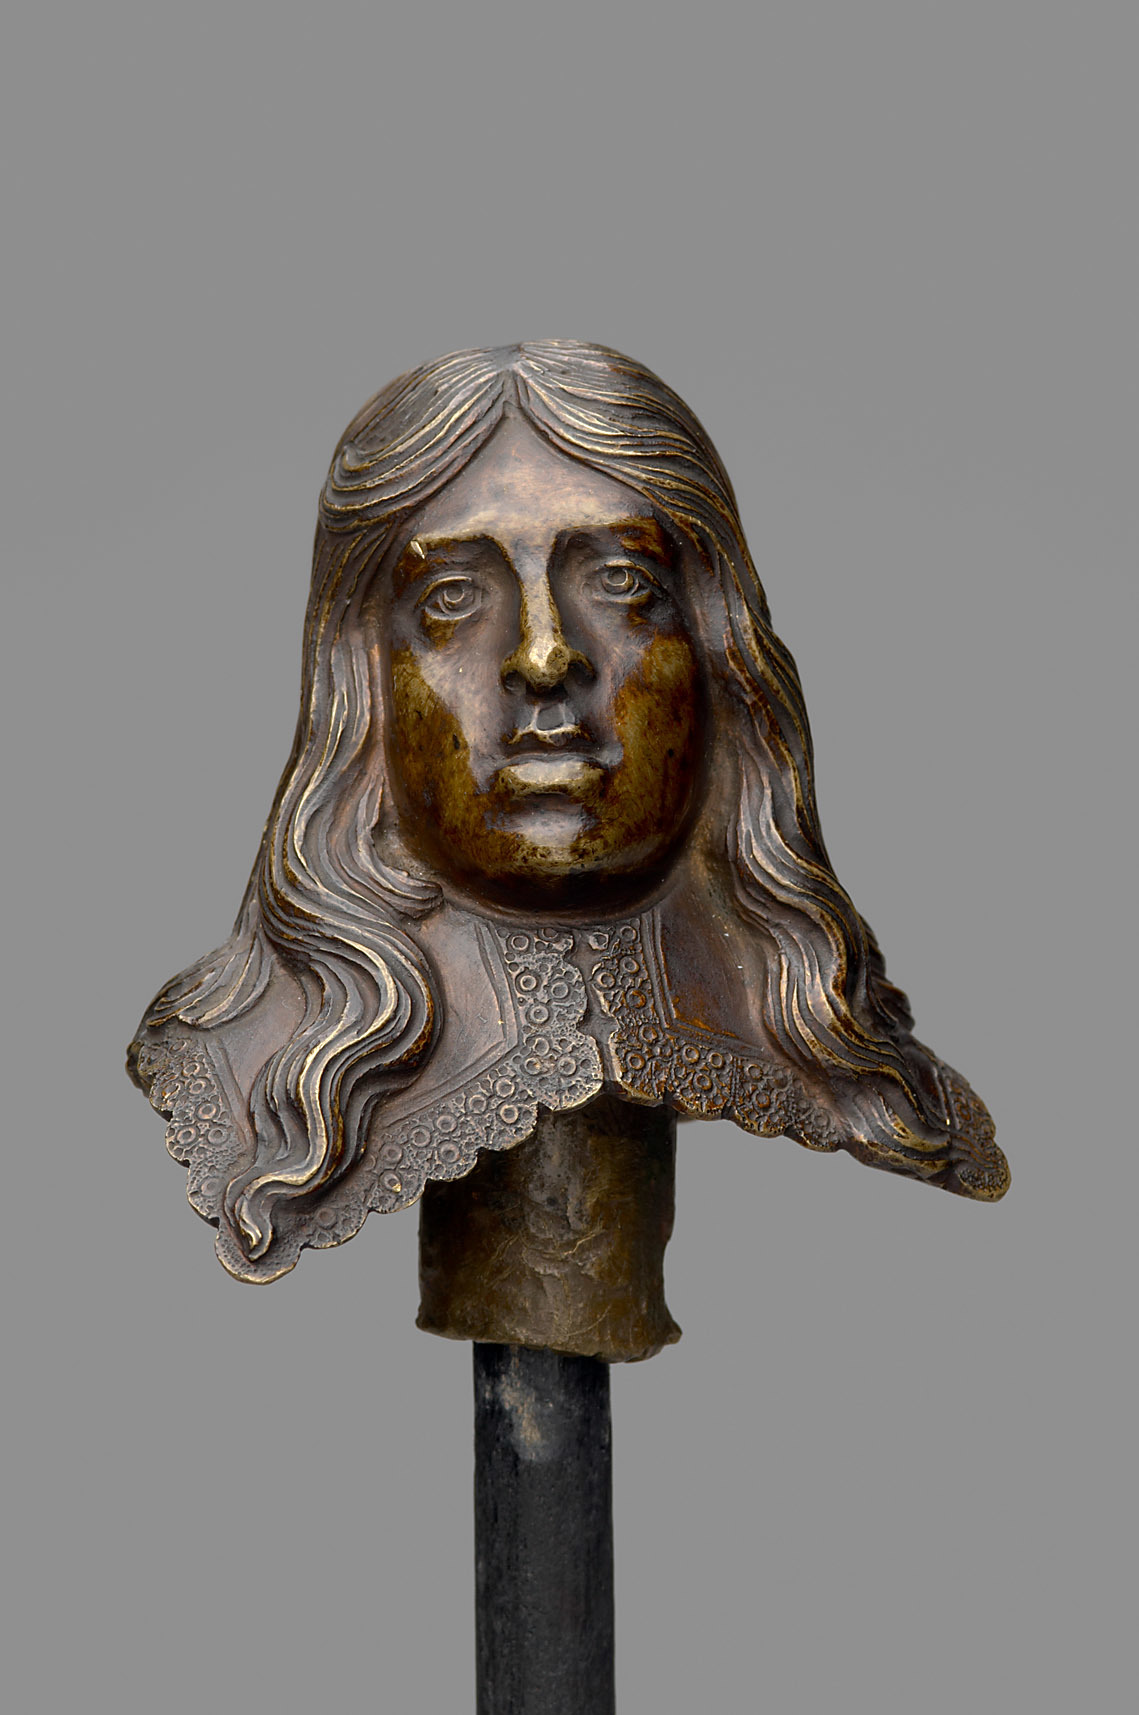 Replaceable head (Archduke Leopold, later Emperor Leopold I), 1600-1658, Caspar Gras